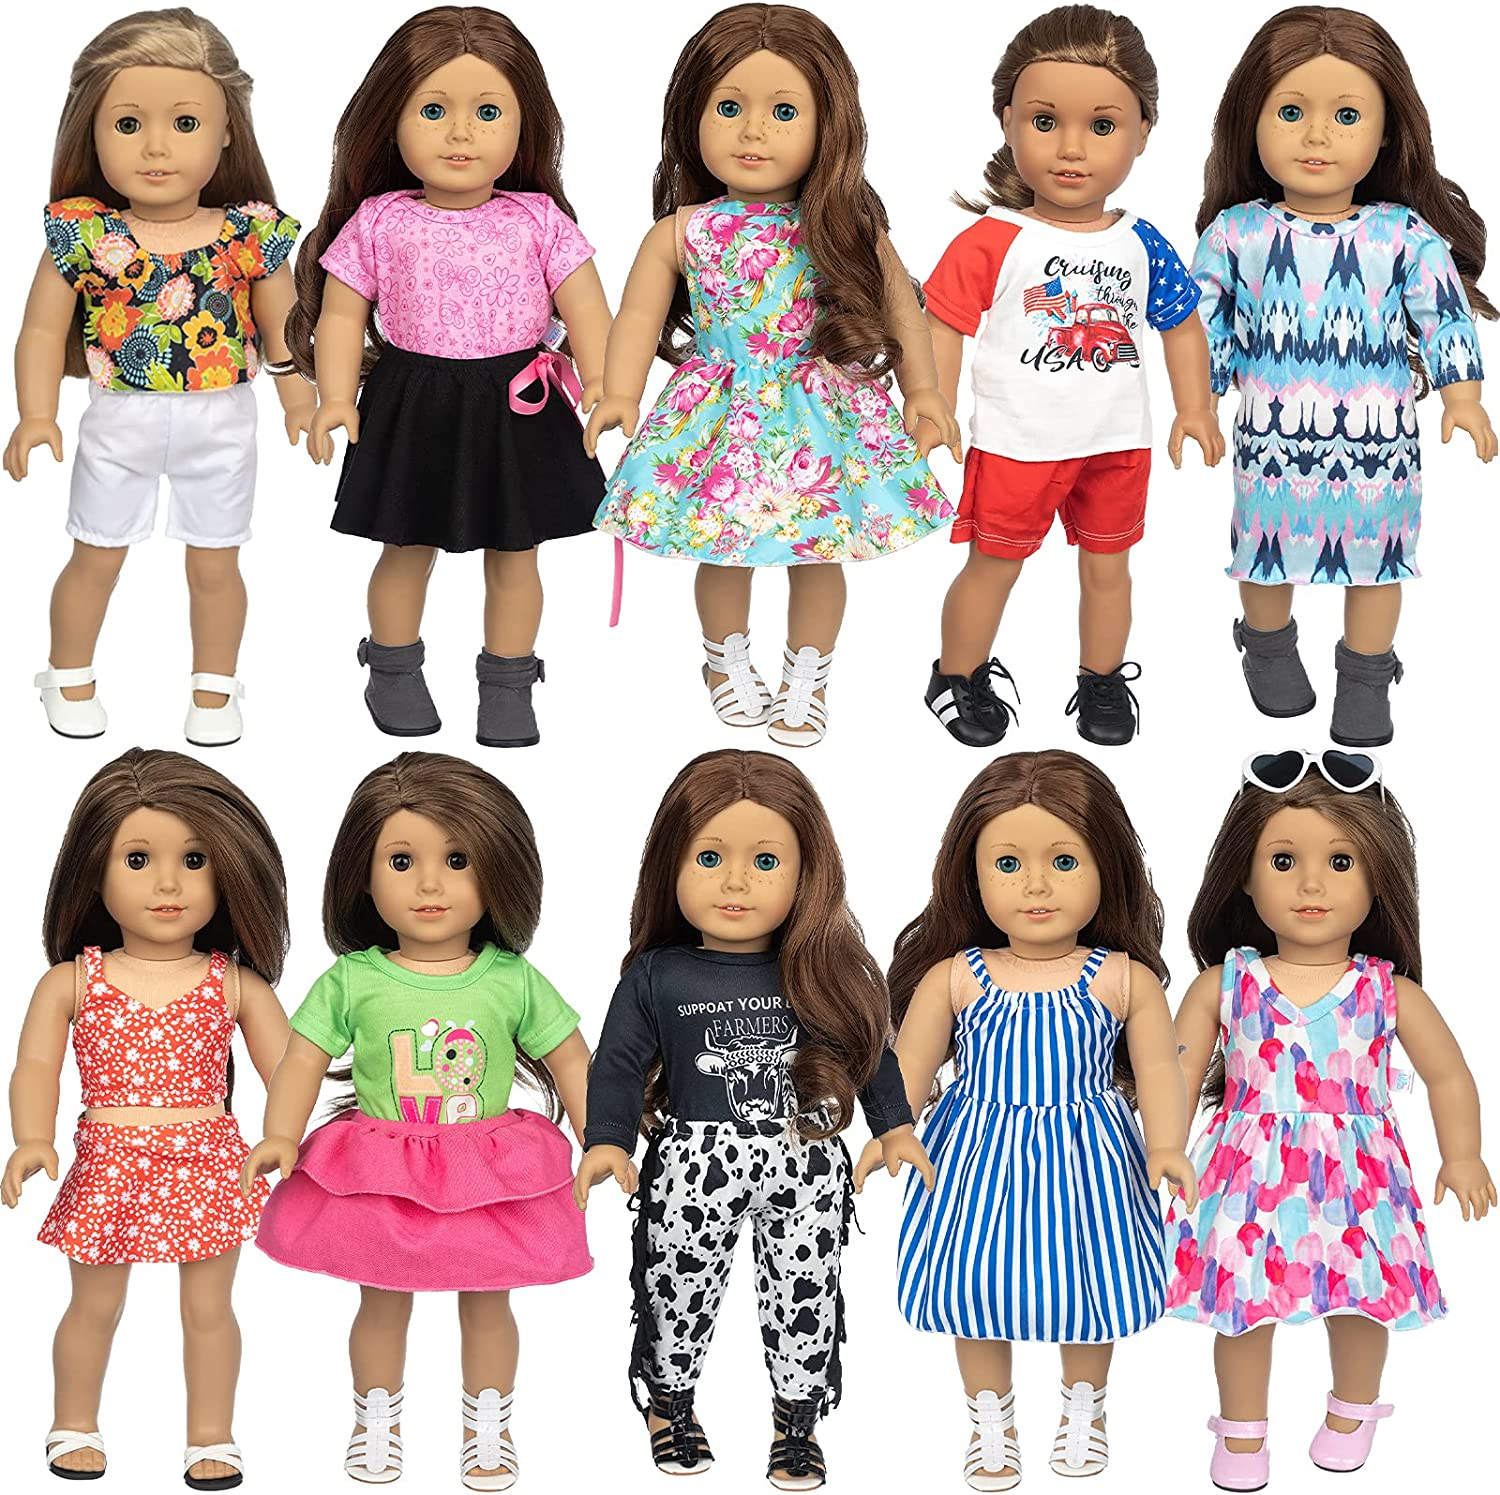 Nippon regular agency ZNTWEI 18 Inch American Doll Clothes Accessories Ame Max 74% OFF Set fit and